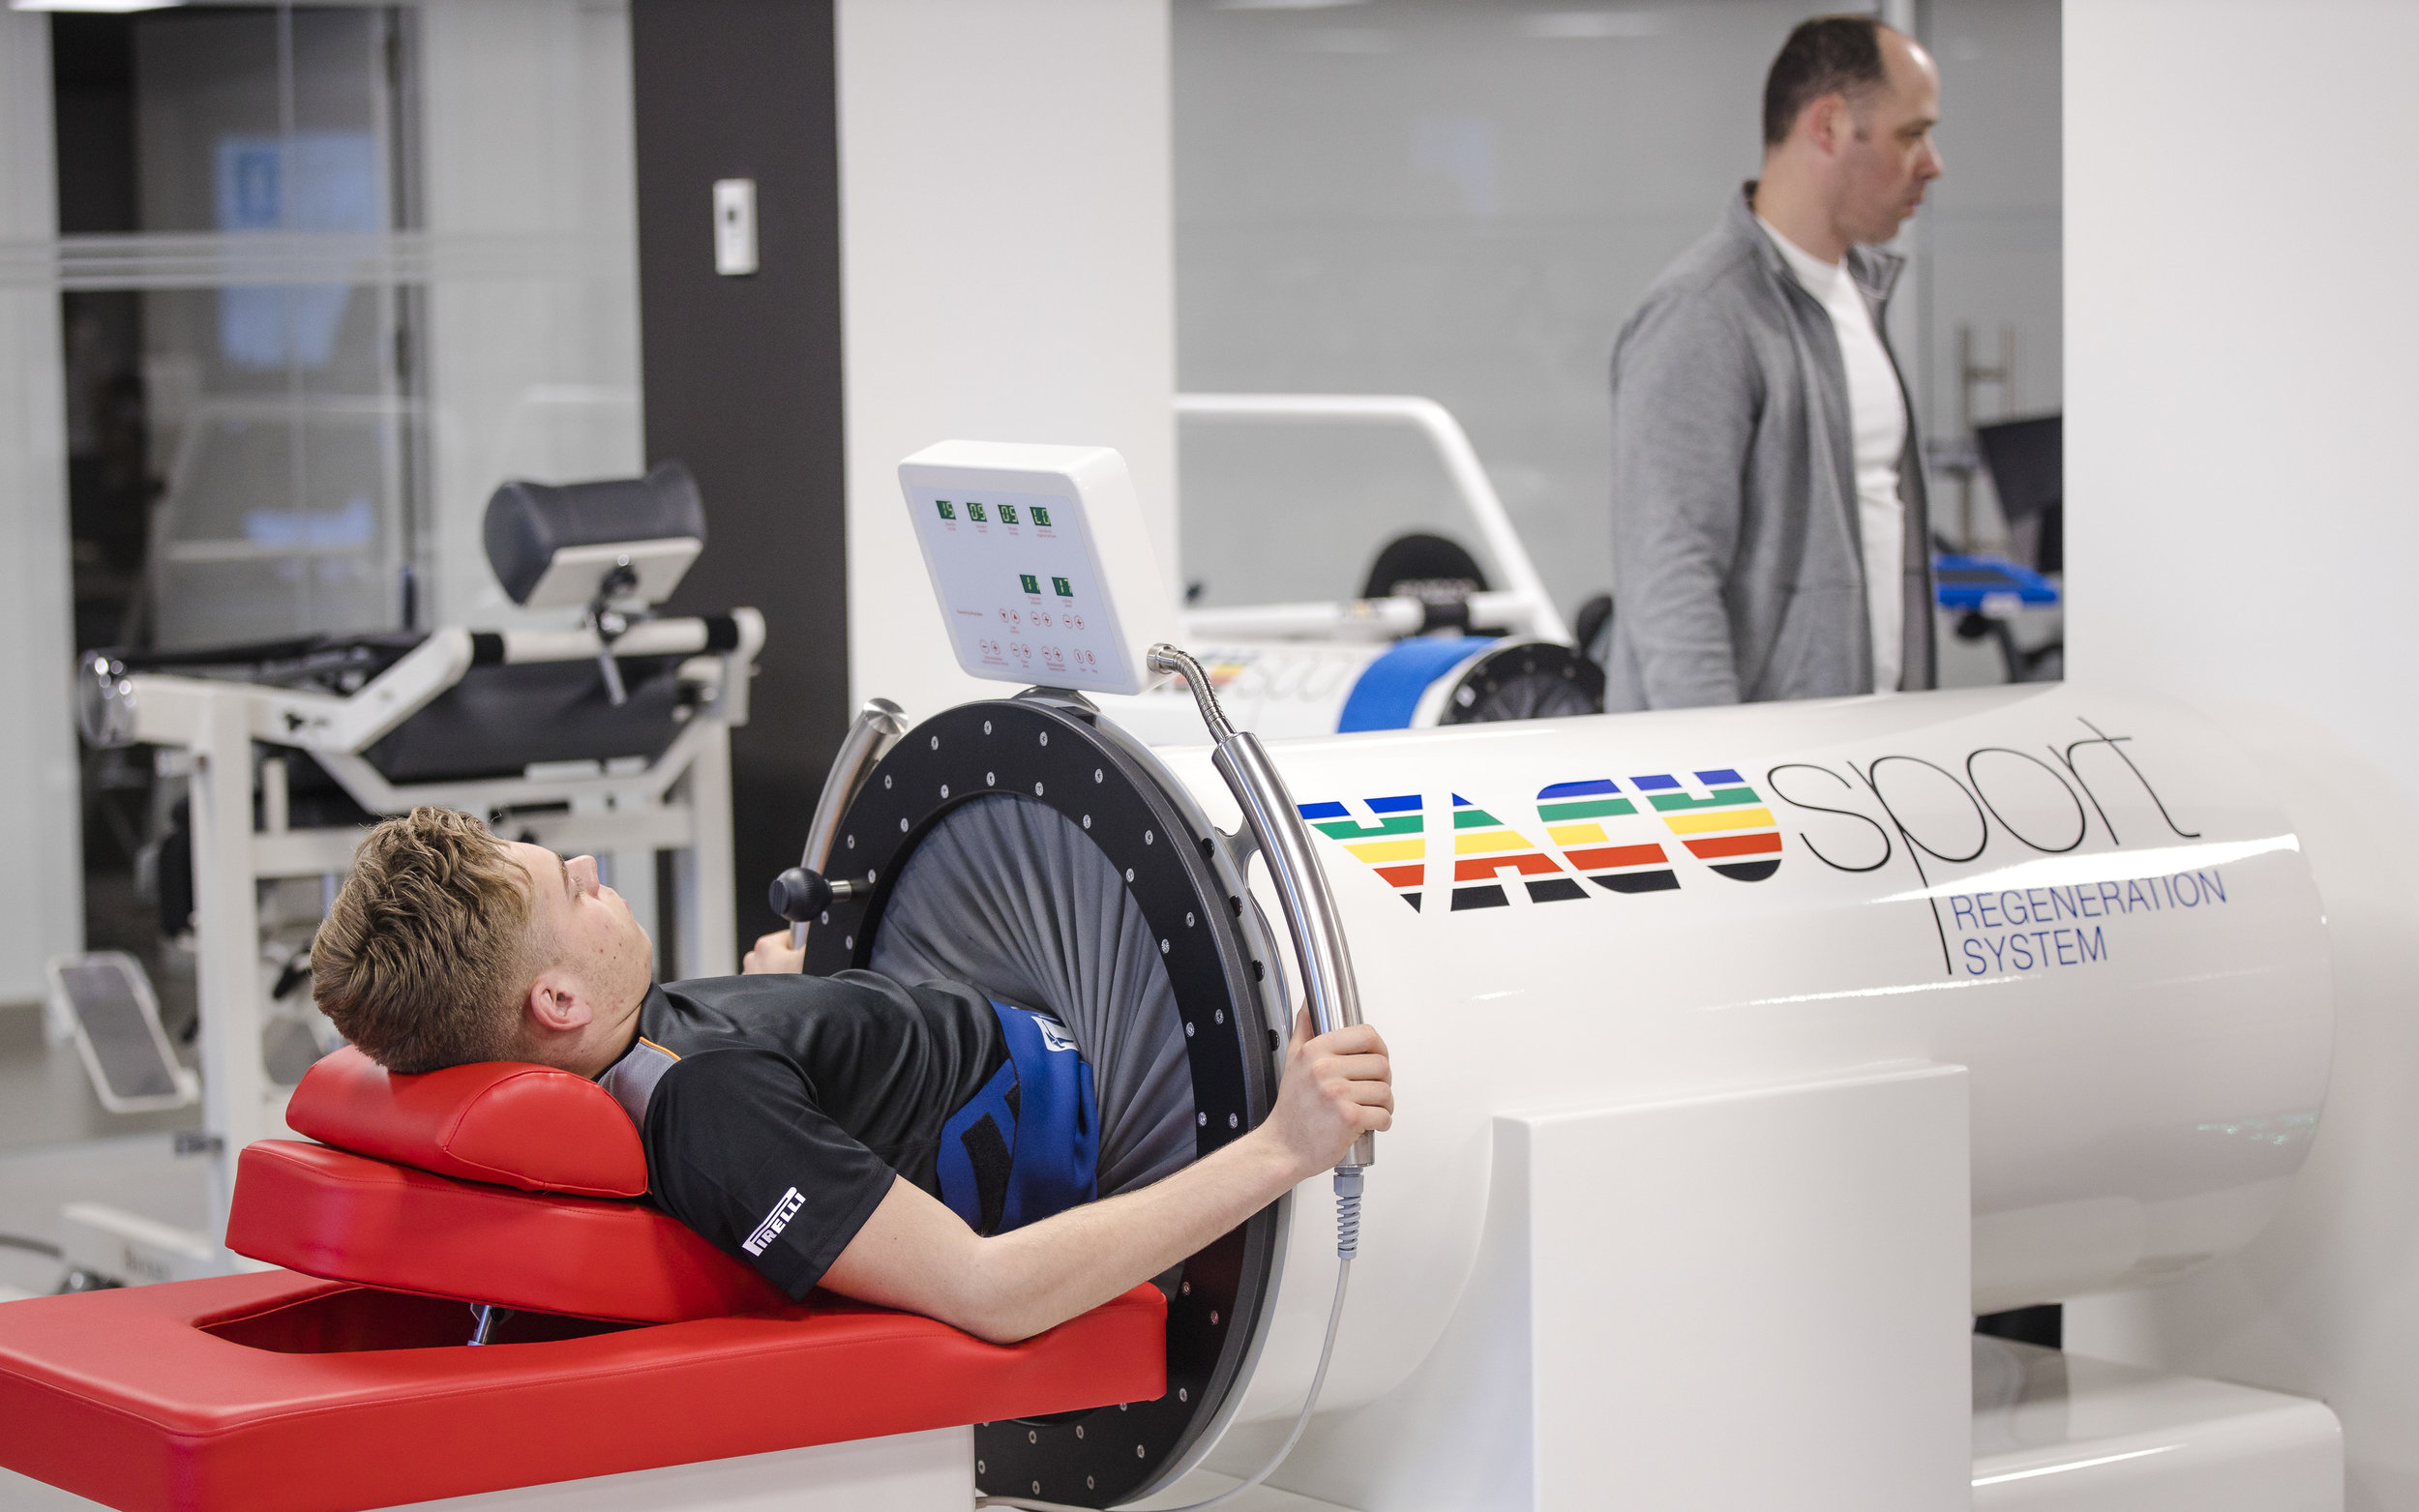 Vacusport regeneration system to speed up muscle recovery